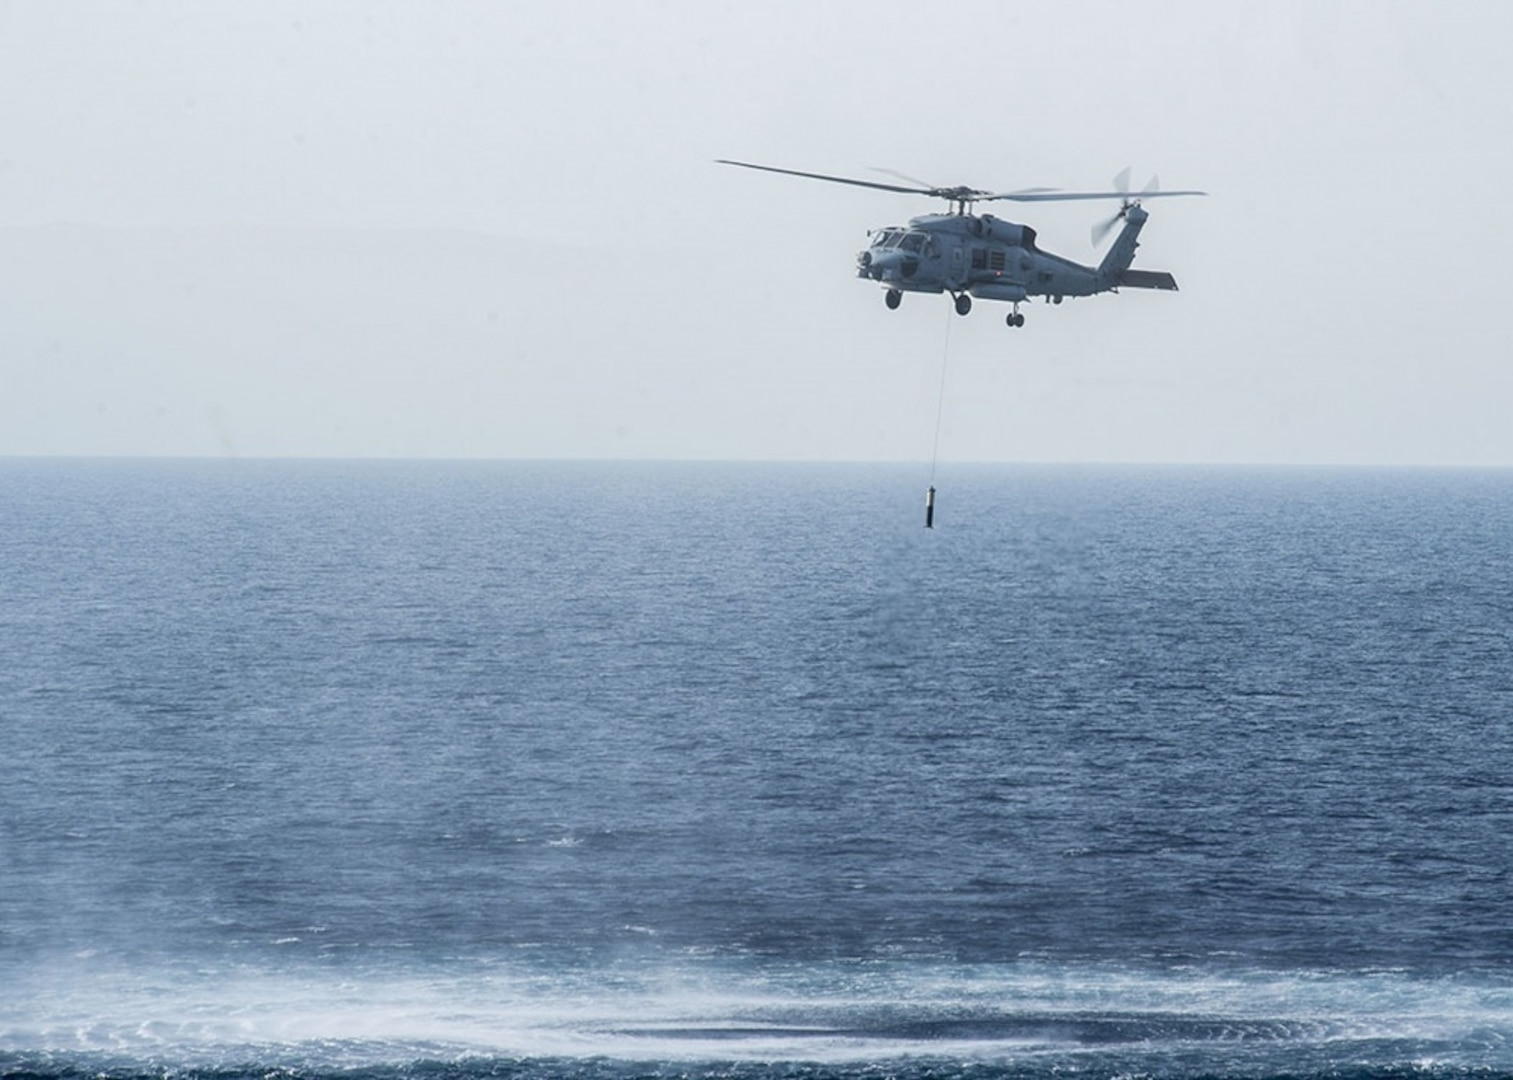 An MH-60 Seahawk helicopter assigned to the Grandmasters of Helicopter Maritime Strike Squadron (HSM) 46 deploys a sonobuoy, a tactical sonar system used for tracking submarine activity.